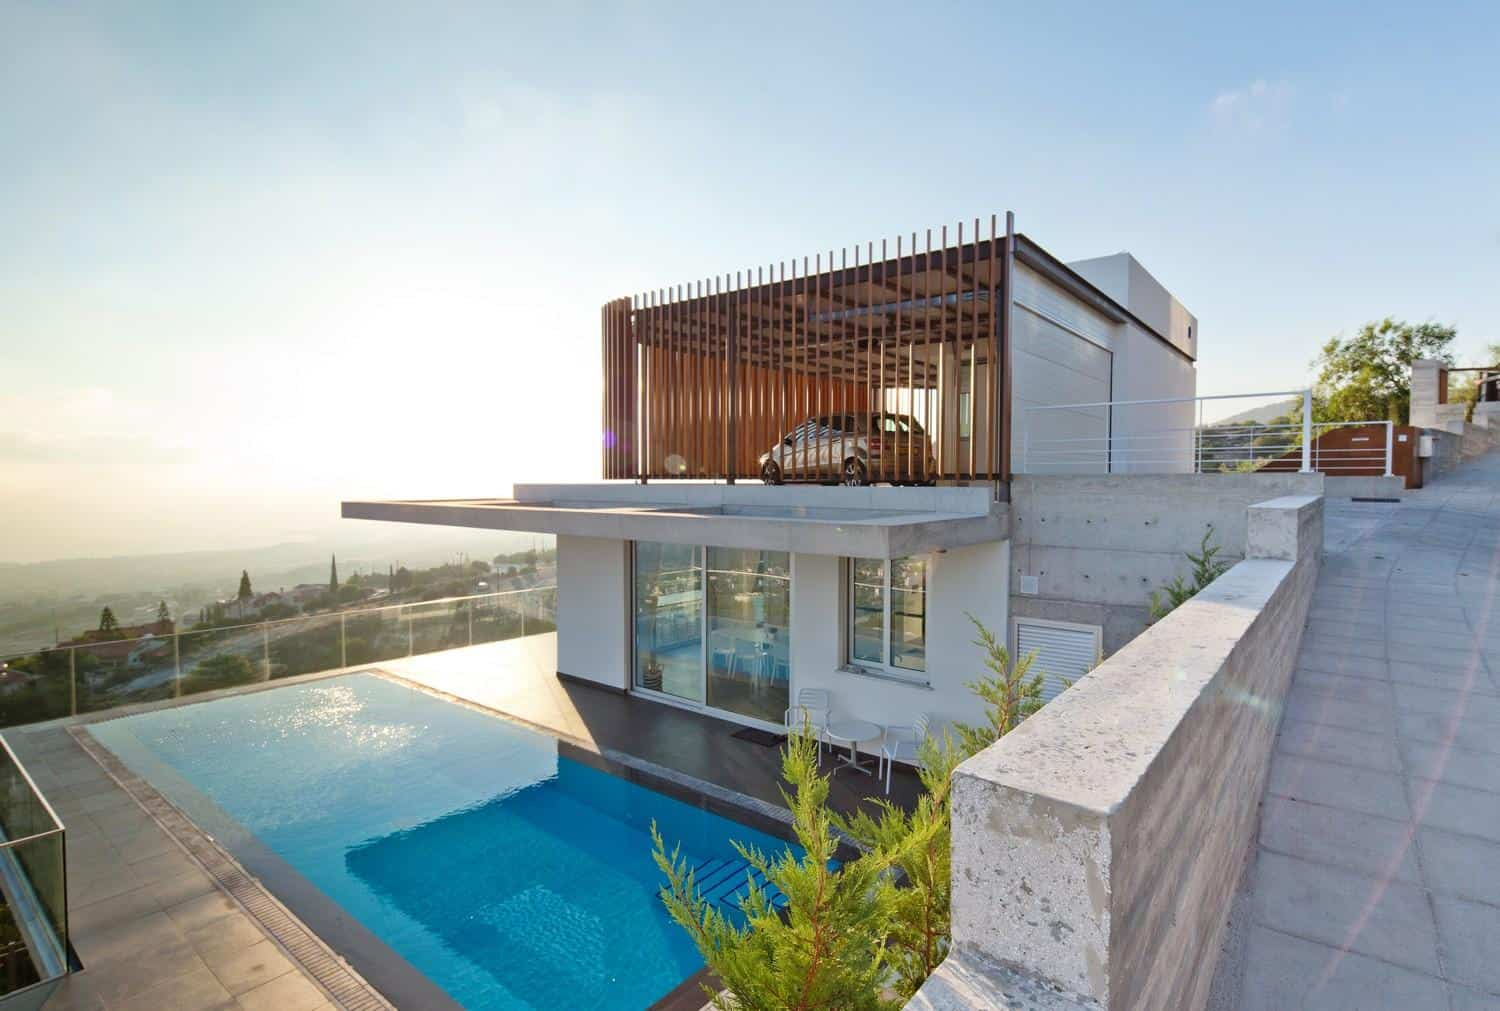 Marvelous Modern House Plans With Rooftop Pool Part - 14: Will You Move To Cyprus To Have A House Like This?